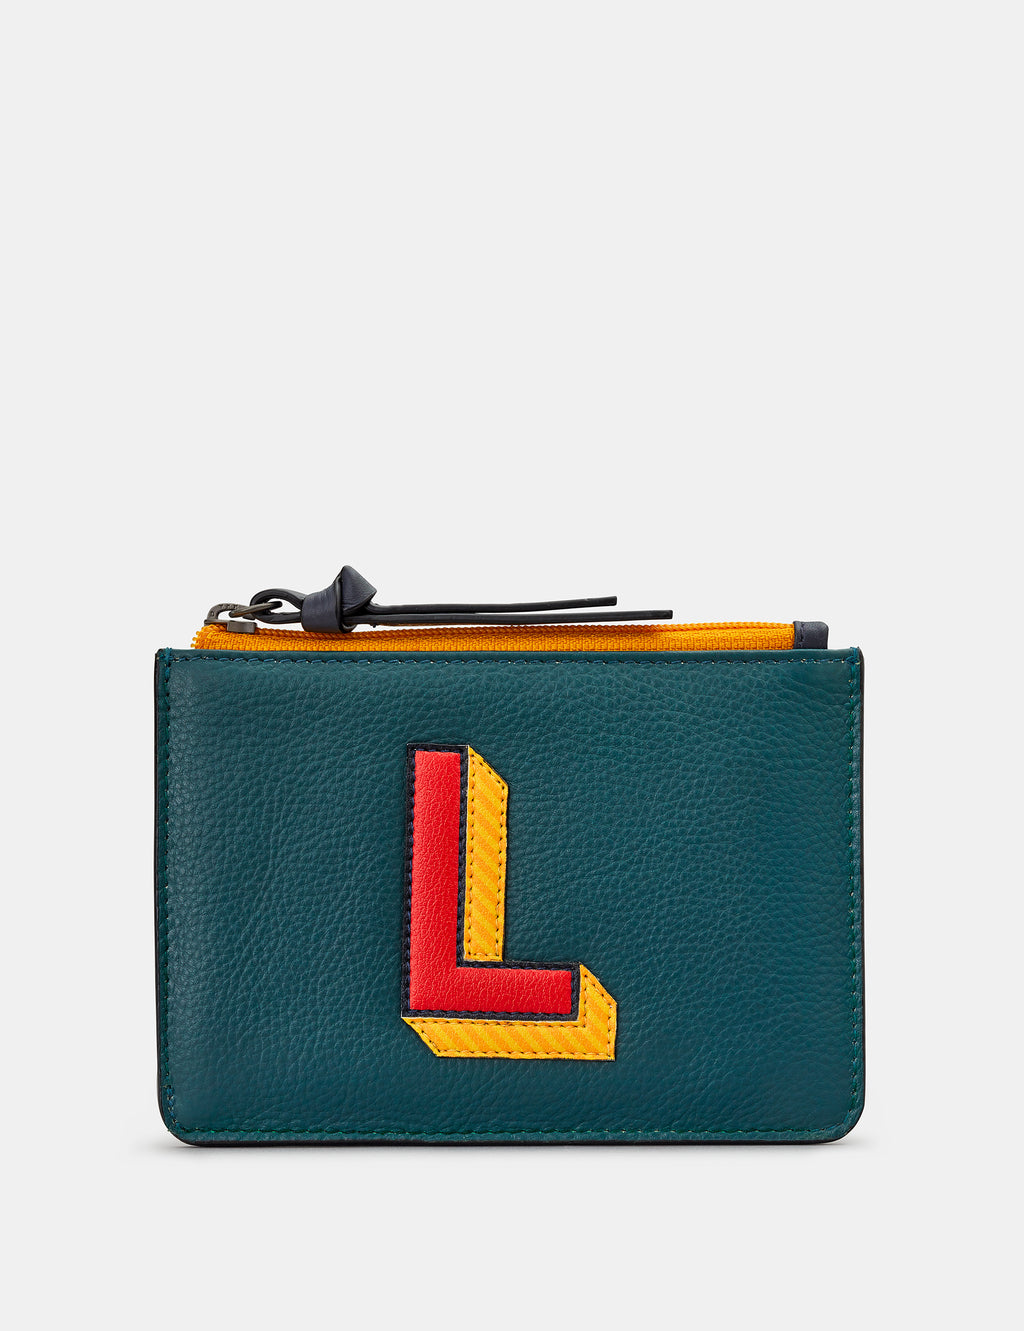 L Initials Teal Leather Zip Top Purse